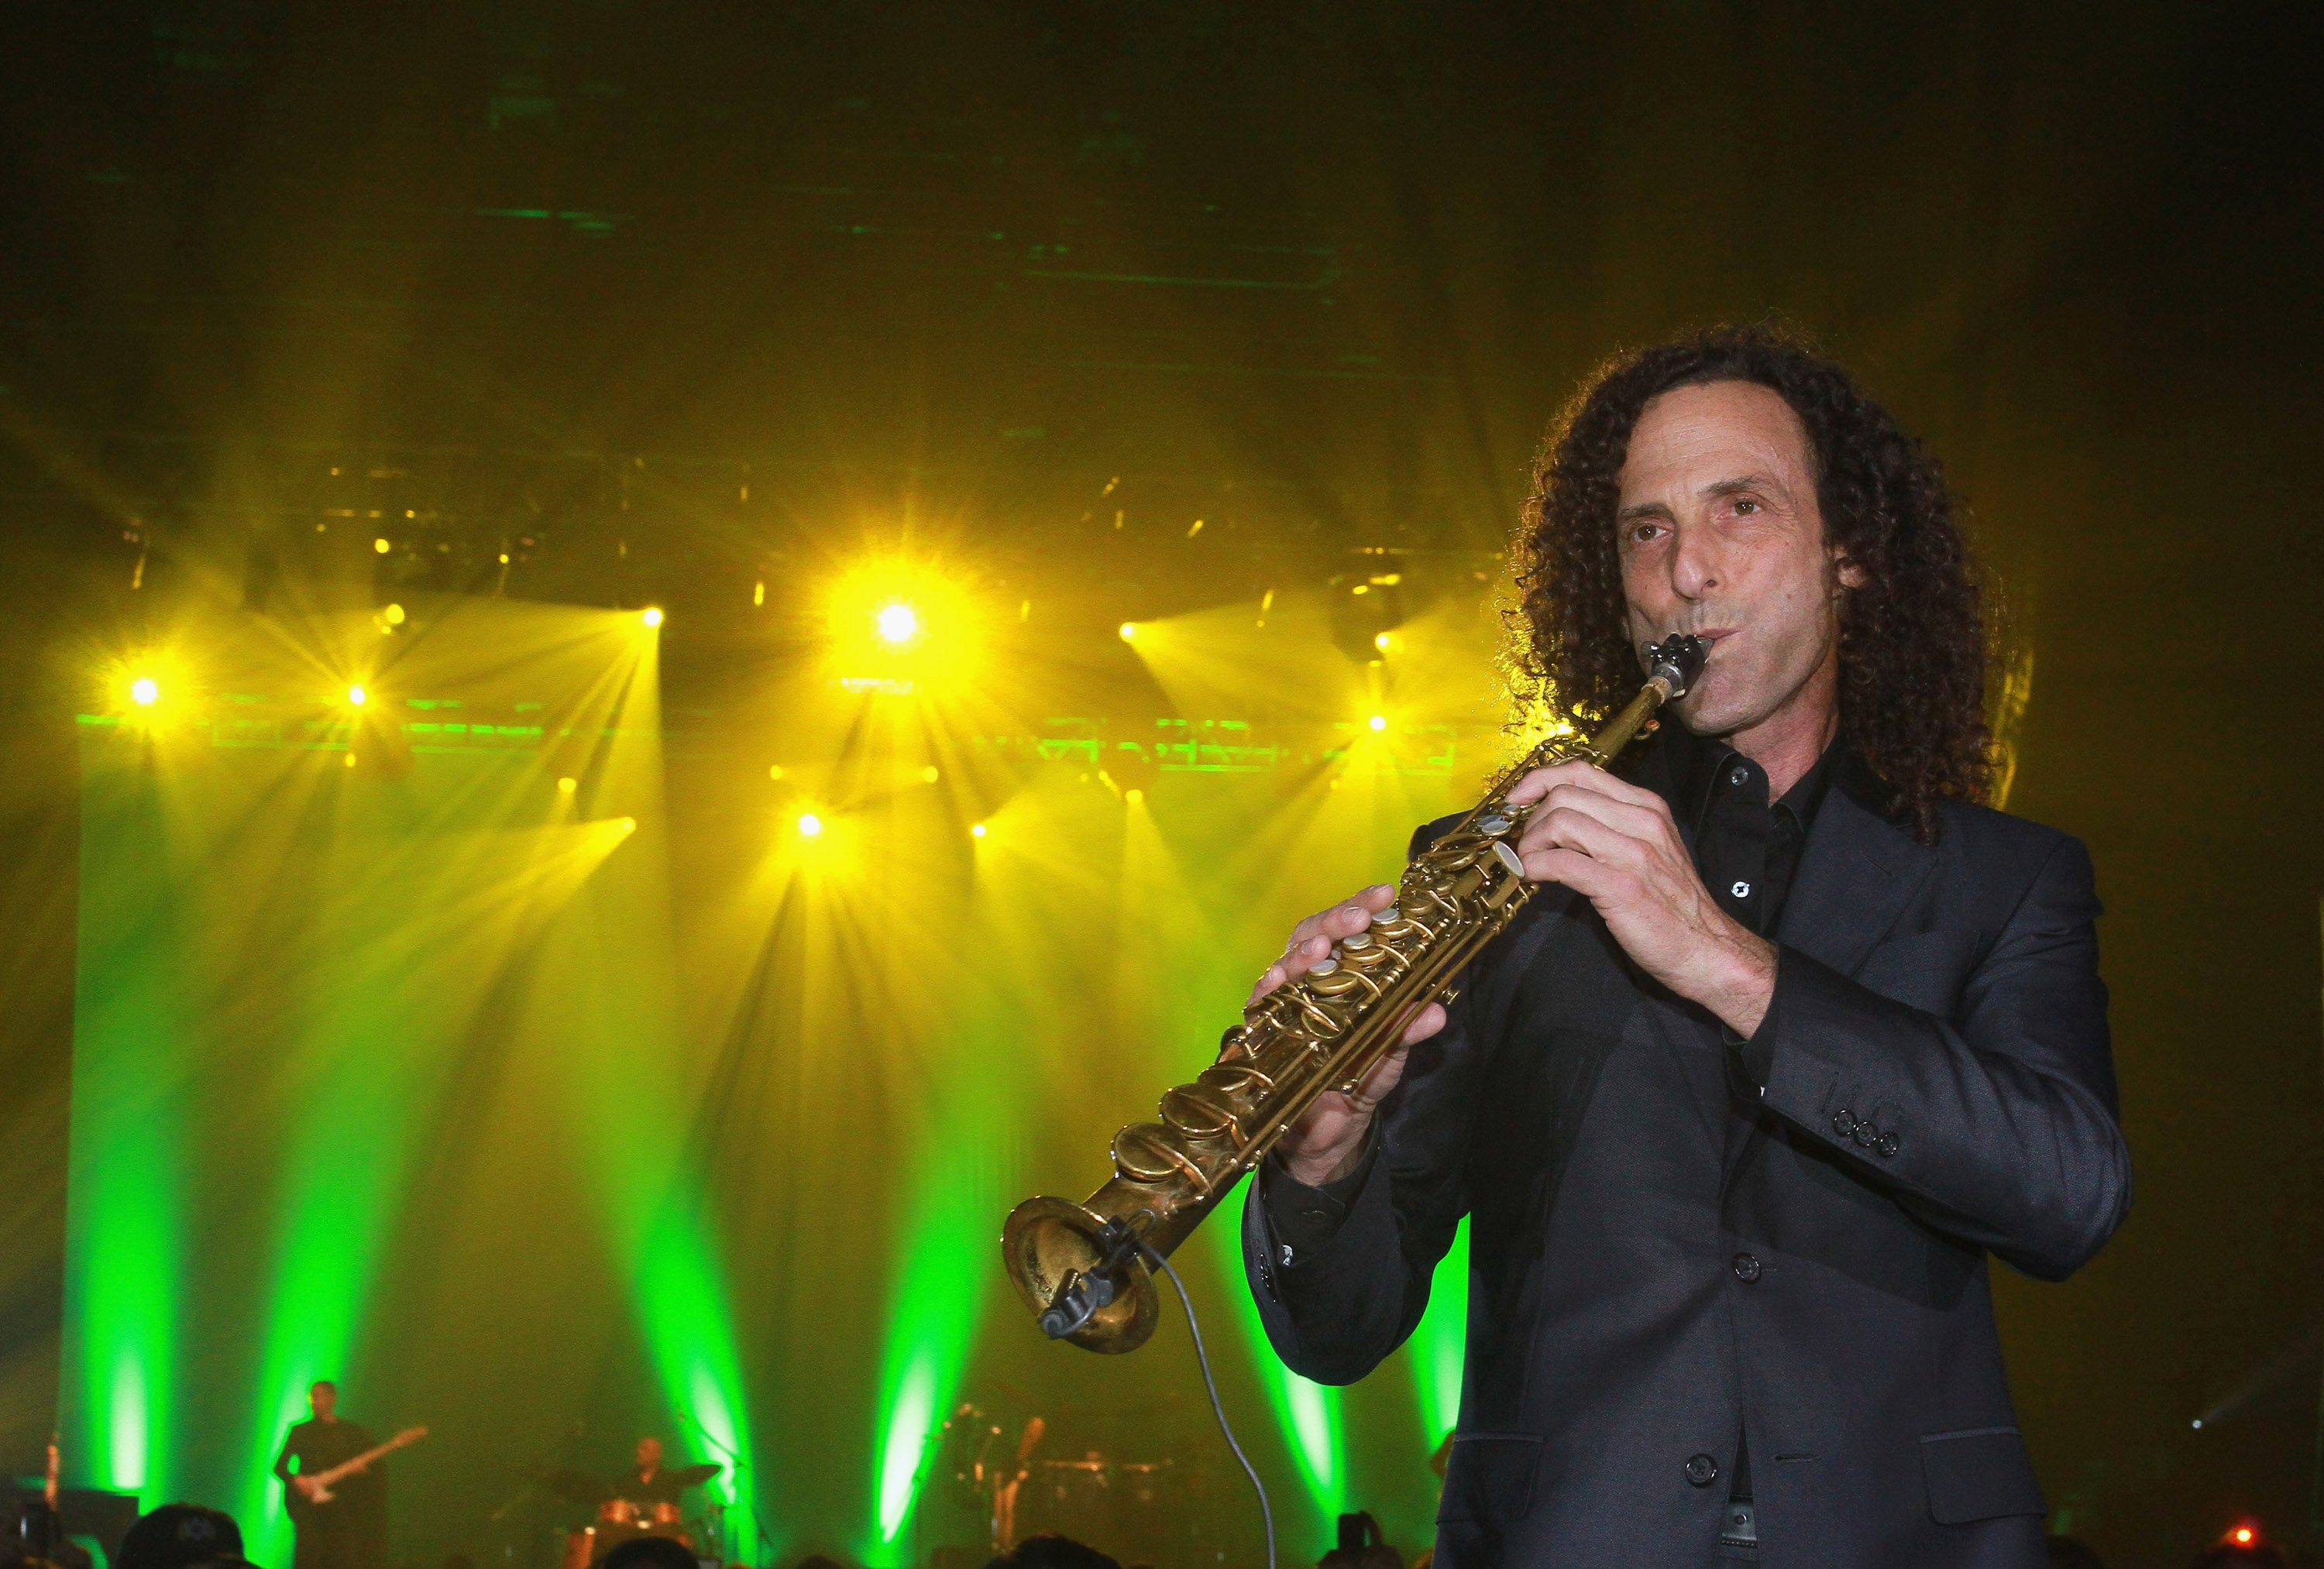 American musician Kenny G performs on stage during his concert at Hong Kong International Trade and Exhibition Centre on May 17, 2011 in Hong Kong.